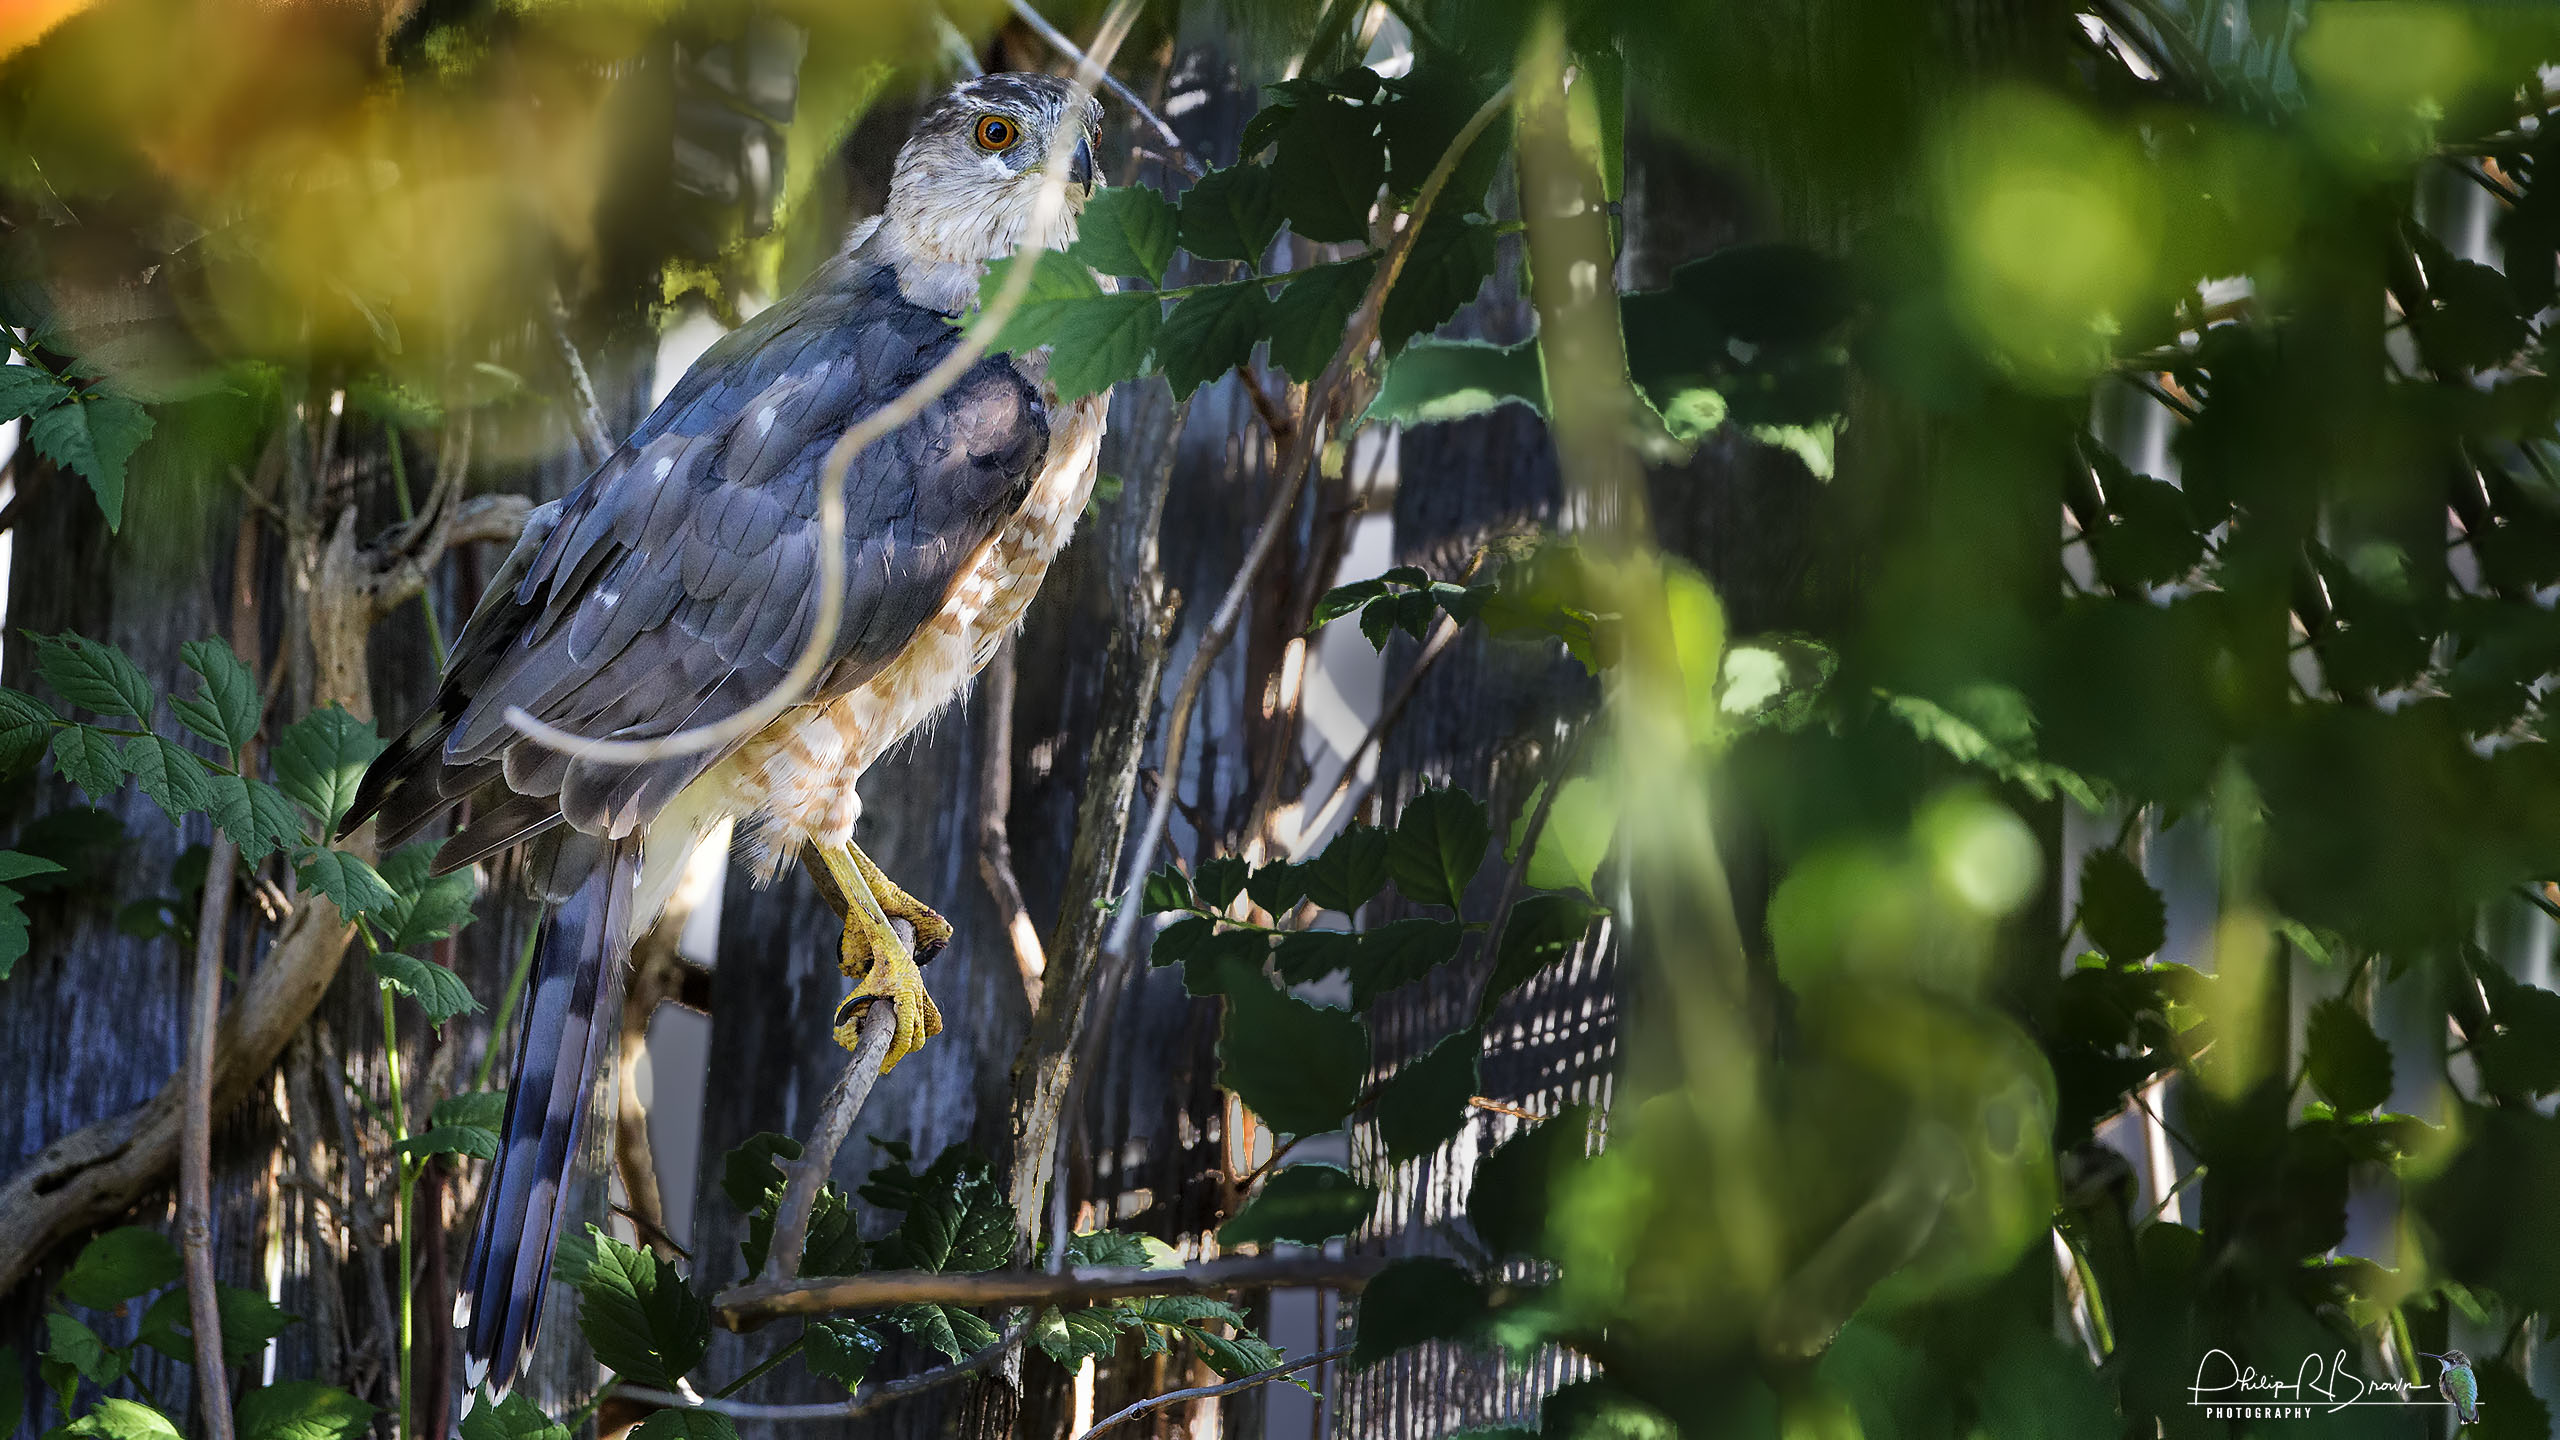 An adult female Cooper's Hawk hunting in the Trumpet Creeper in the yard